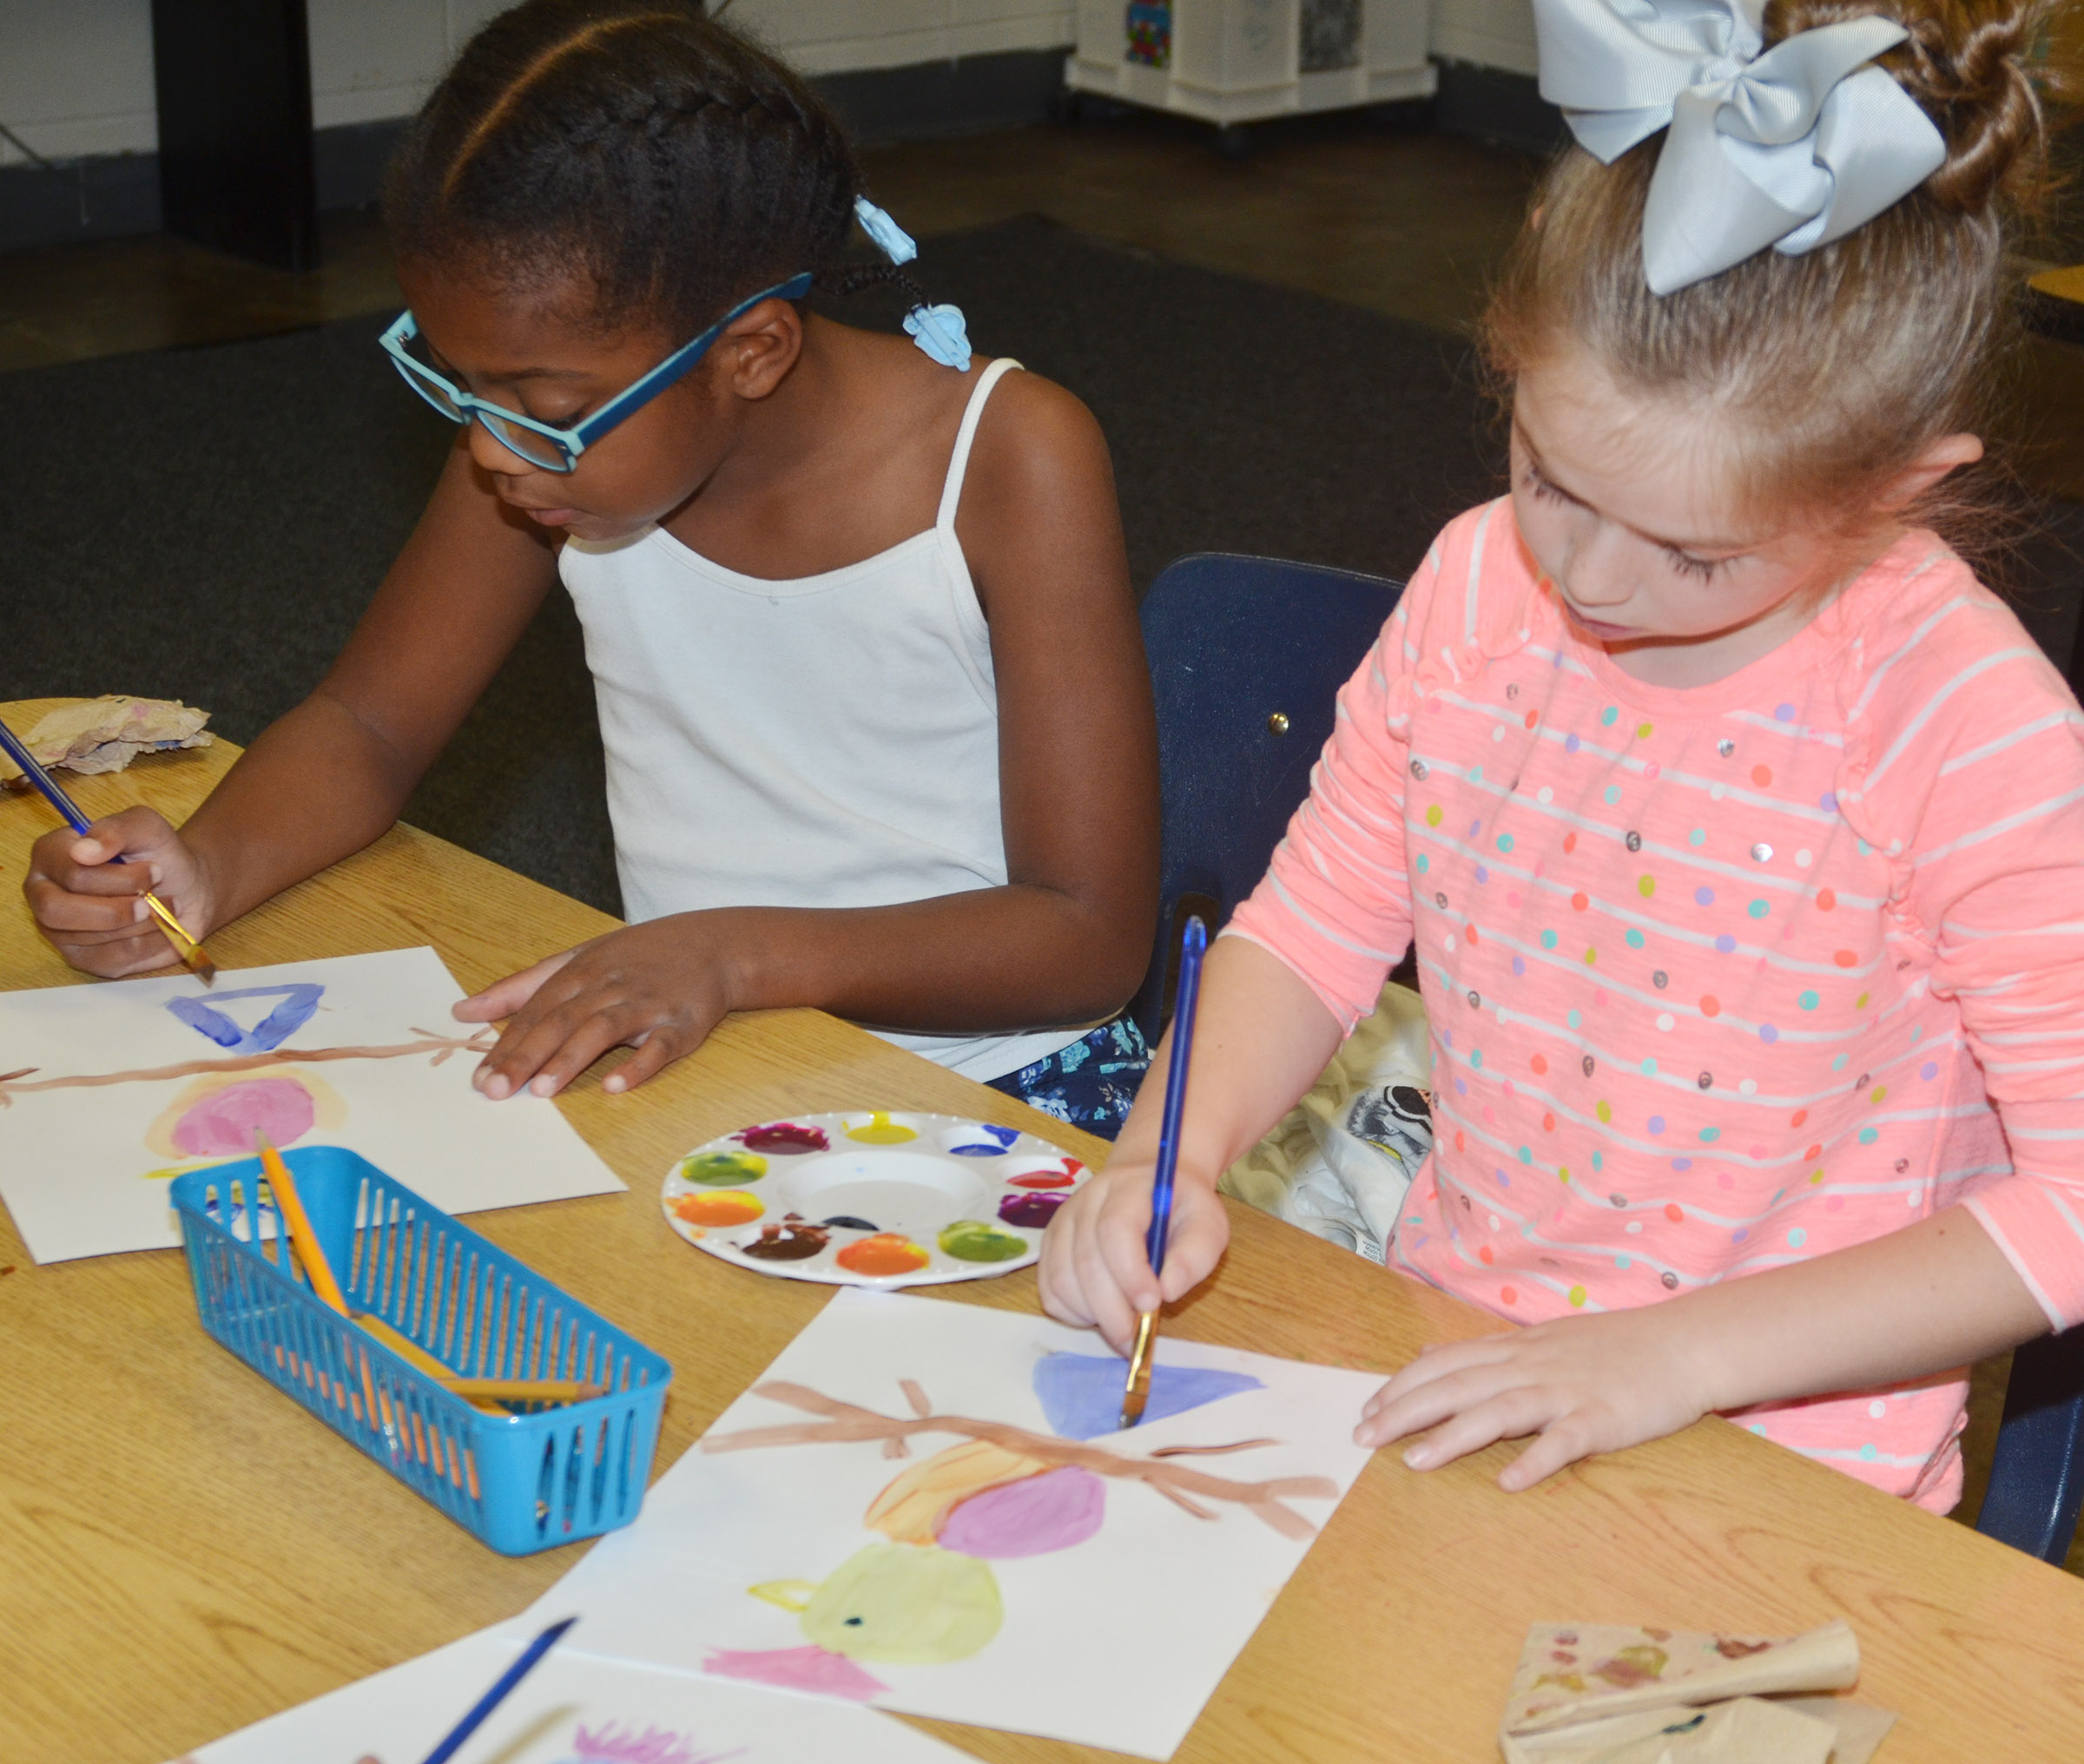 CES second-graders Willow Griffin, at left, and Lainey Price paint.